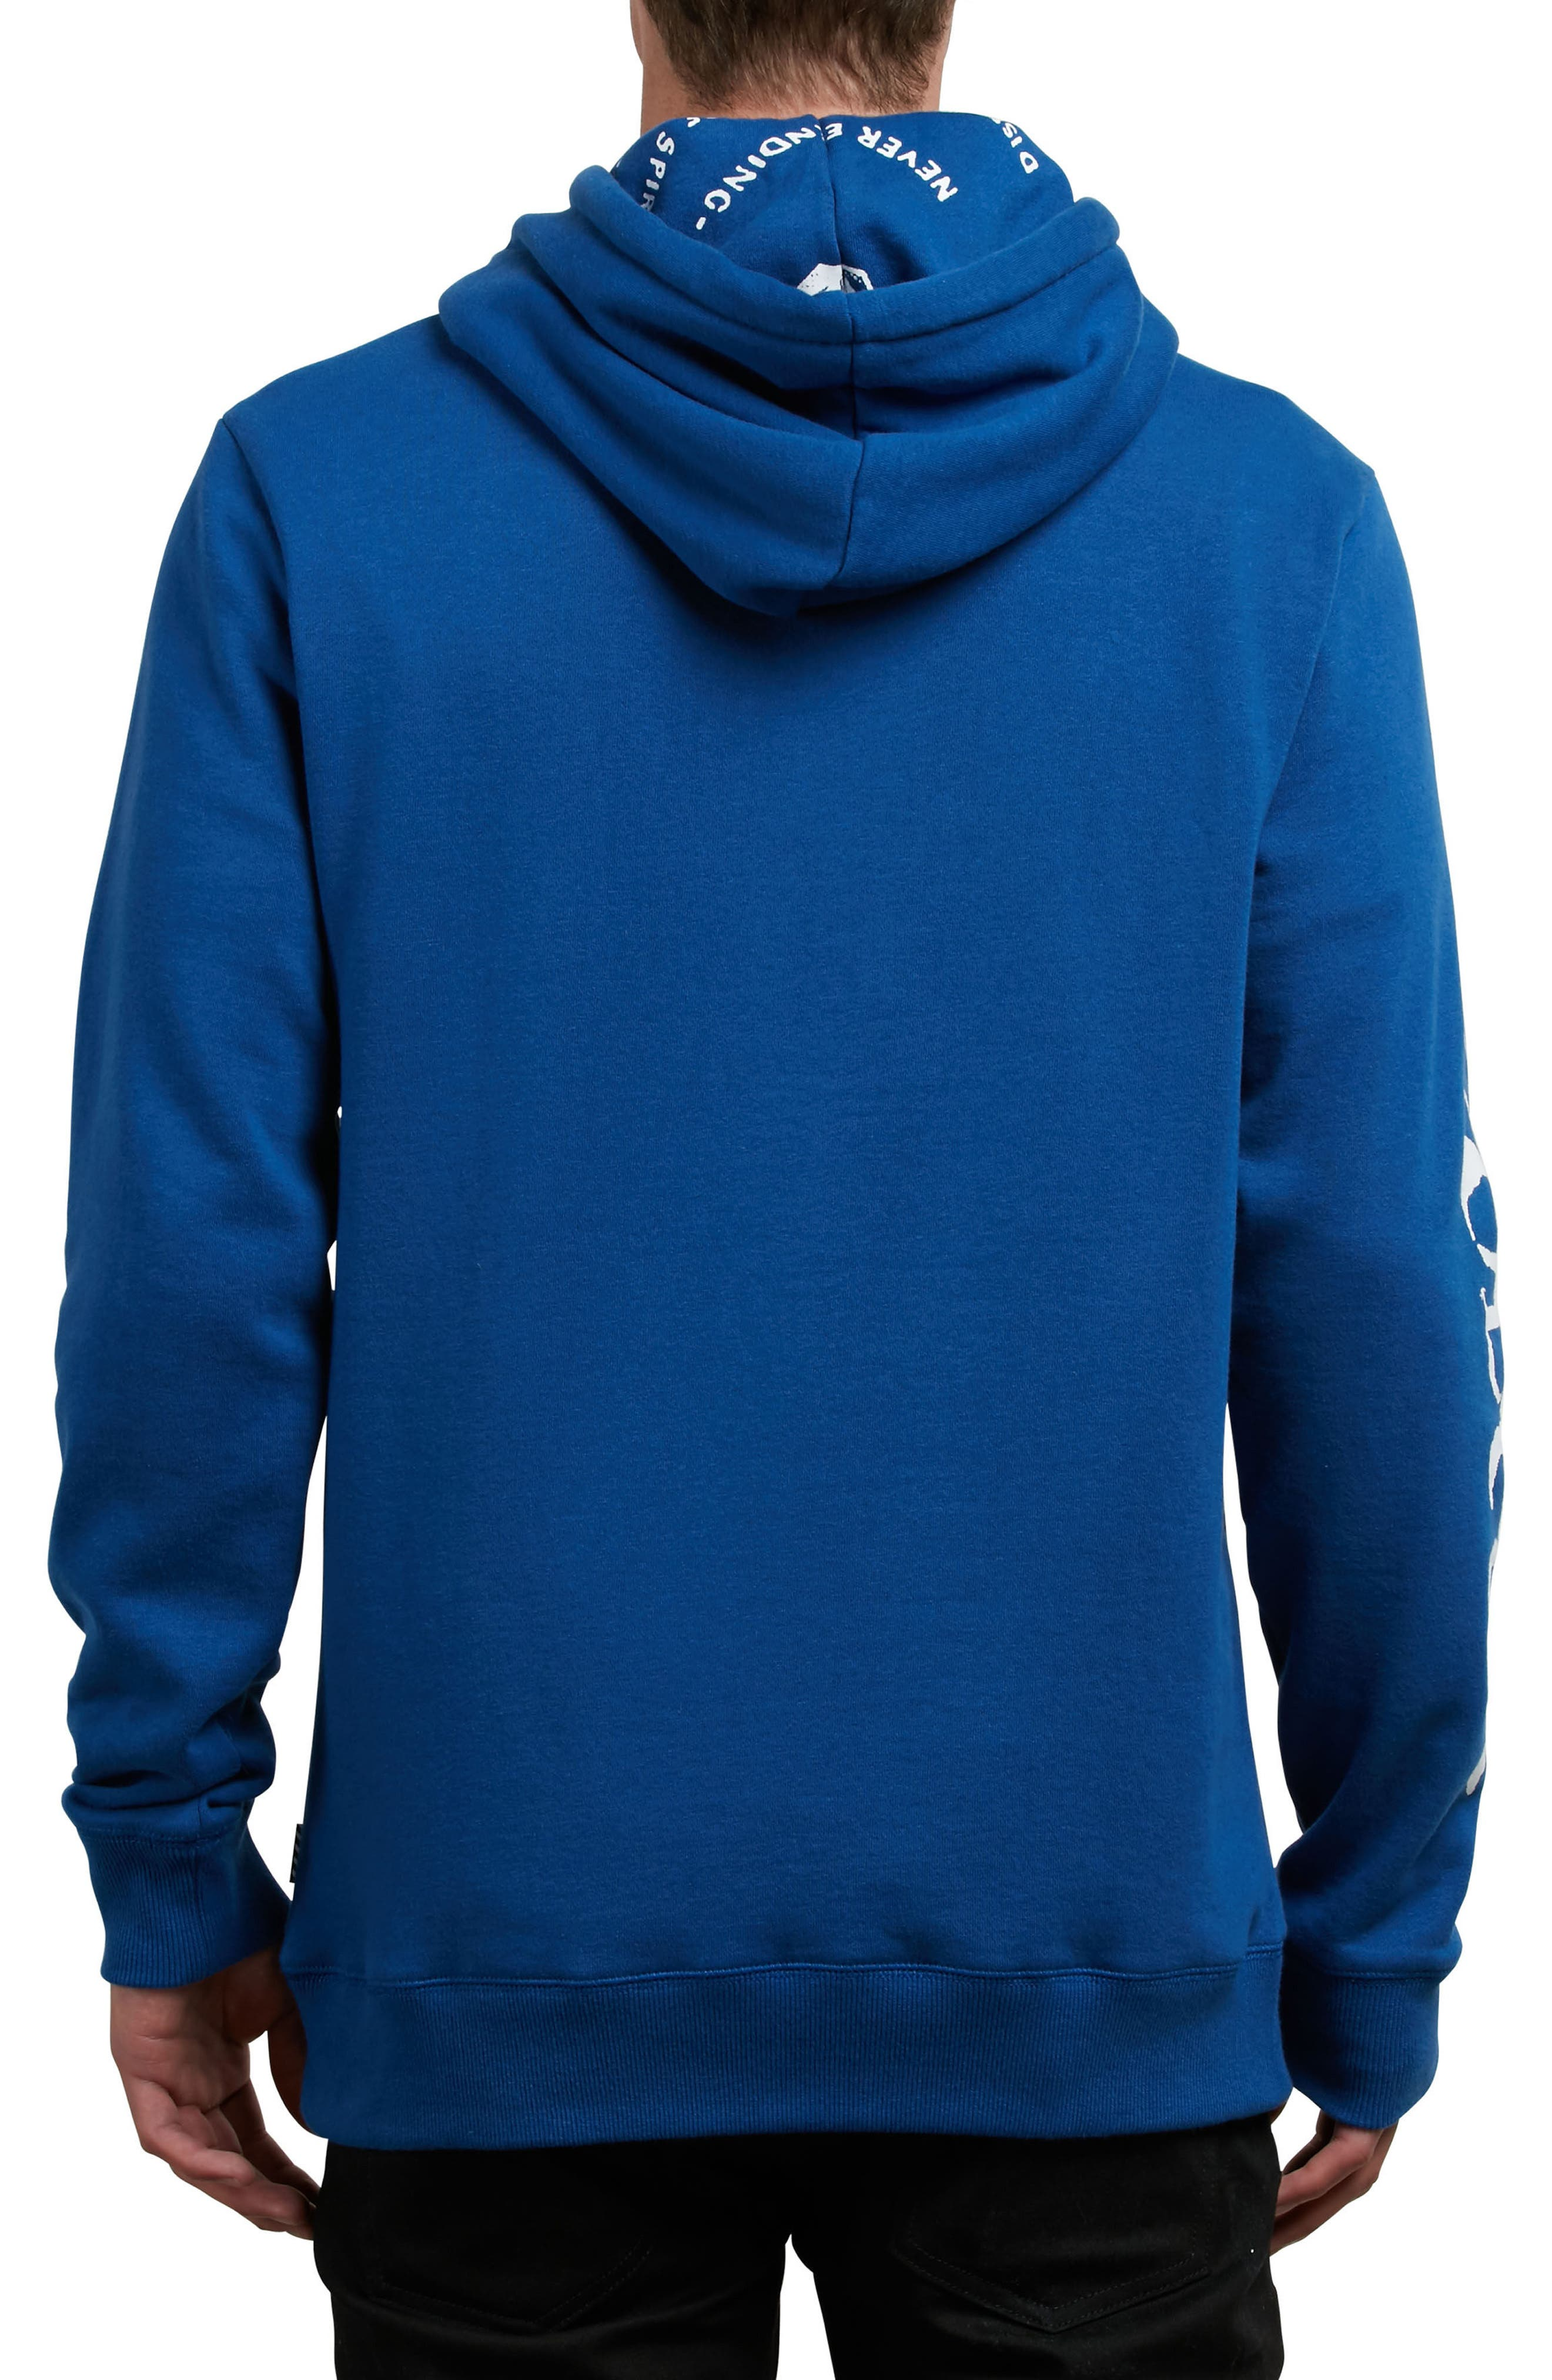 Reload Graphic Hoodie,                             Alternate thumbnail 2, color,                             Camper Blue